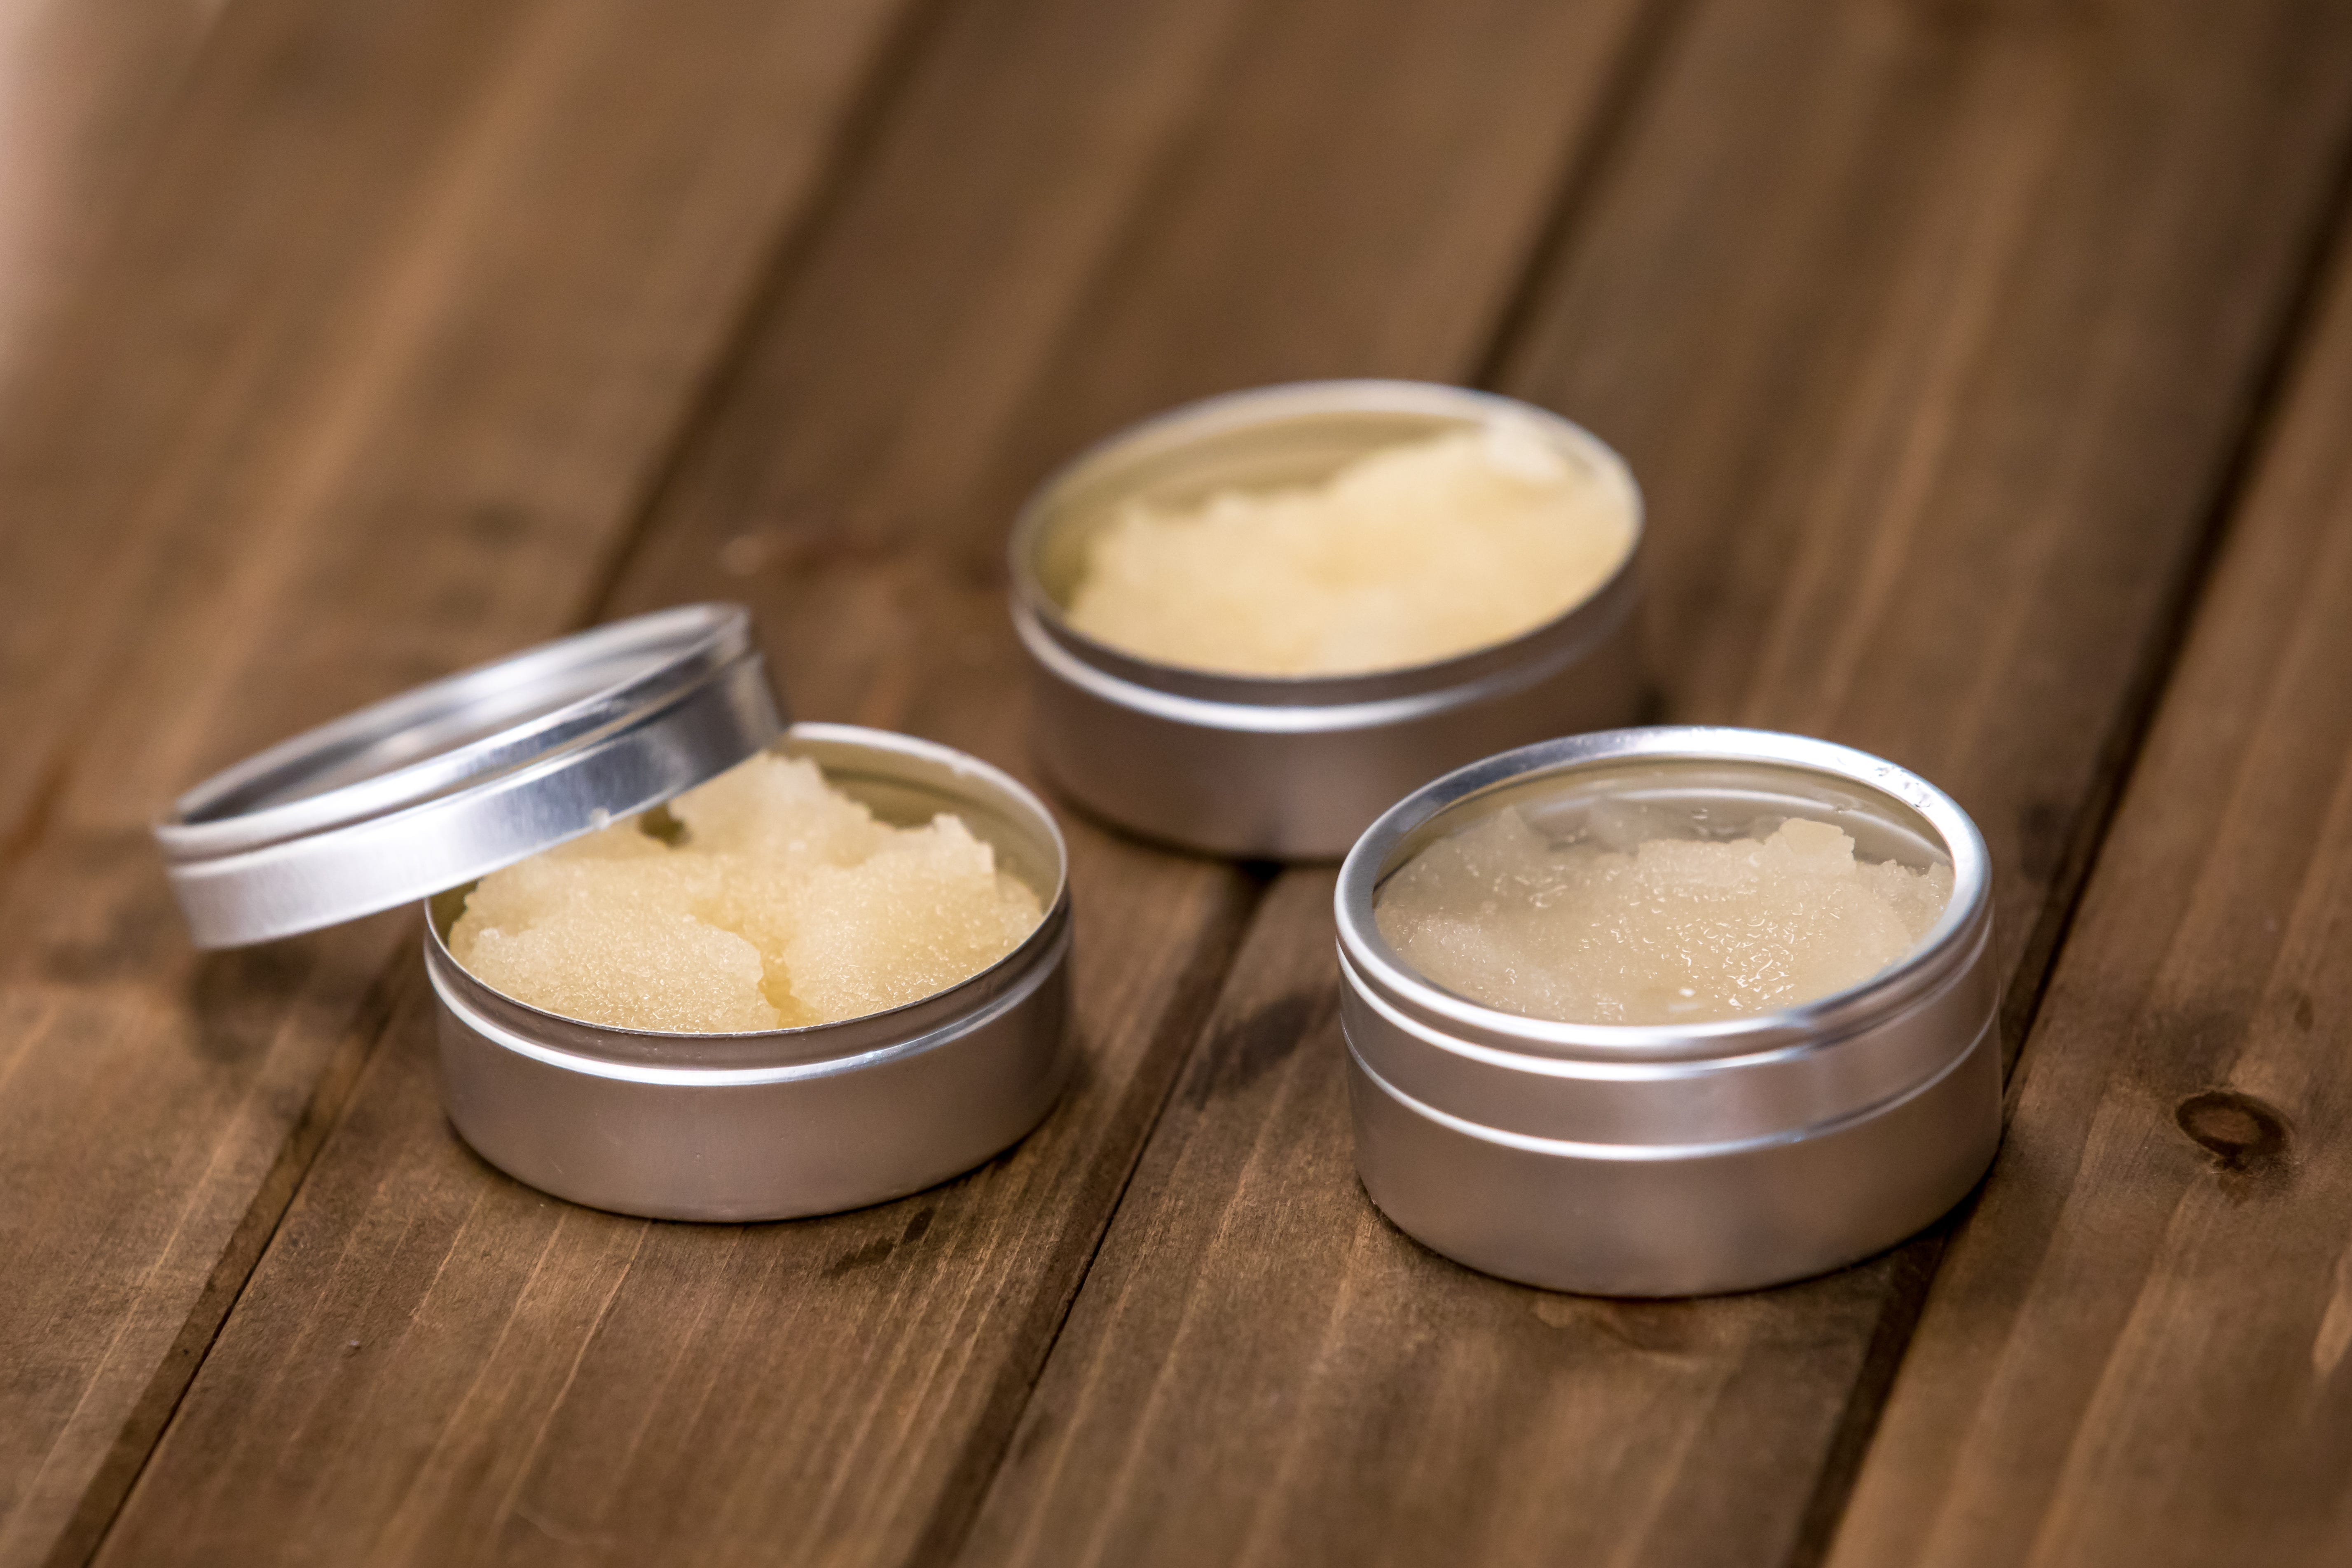 How to make edible lip scrub without honey